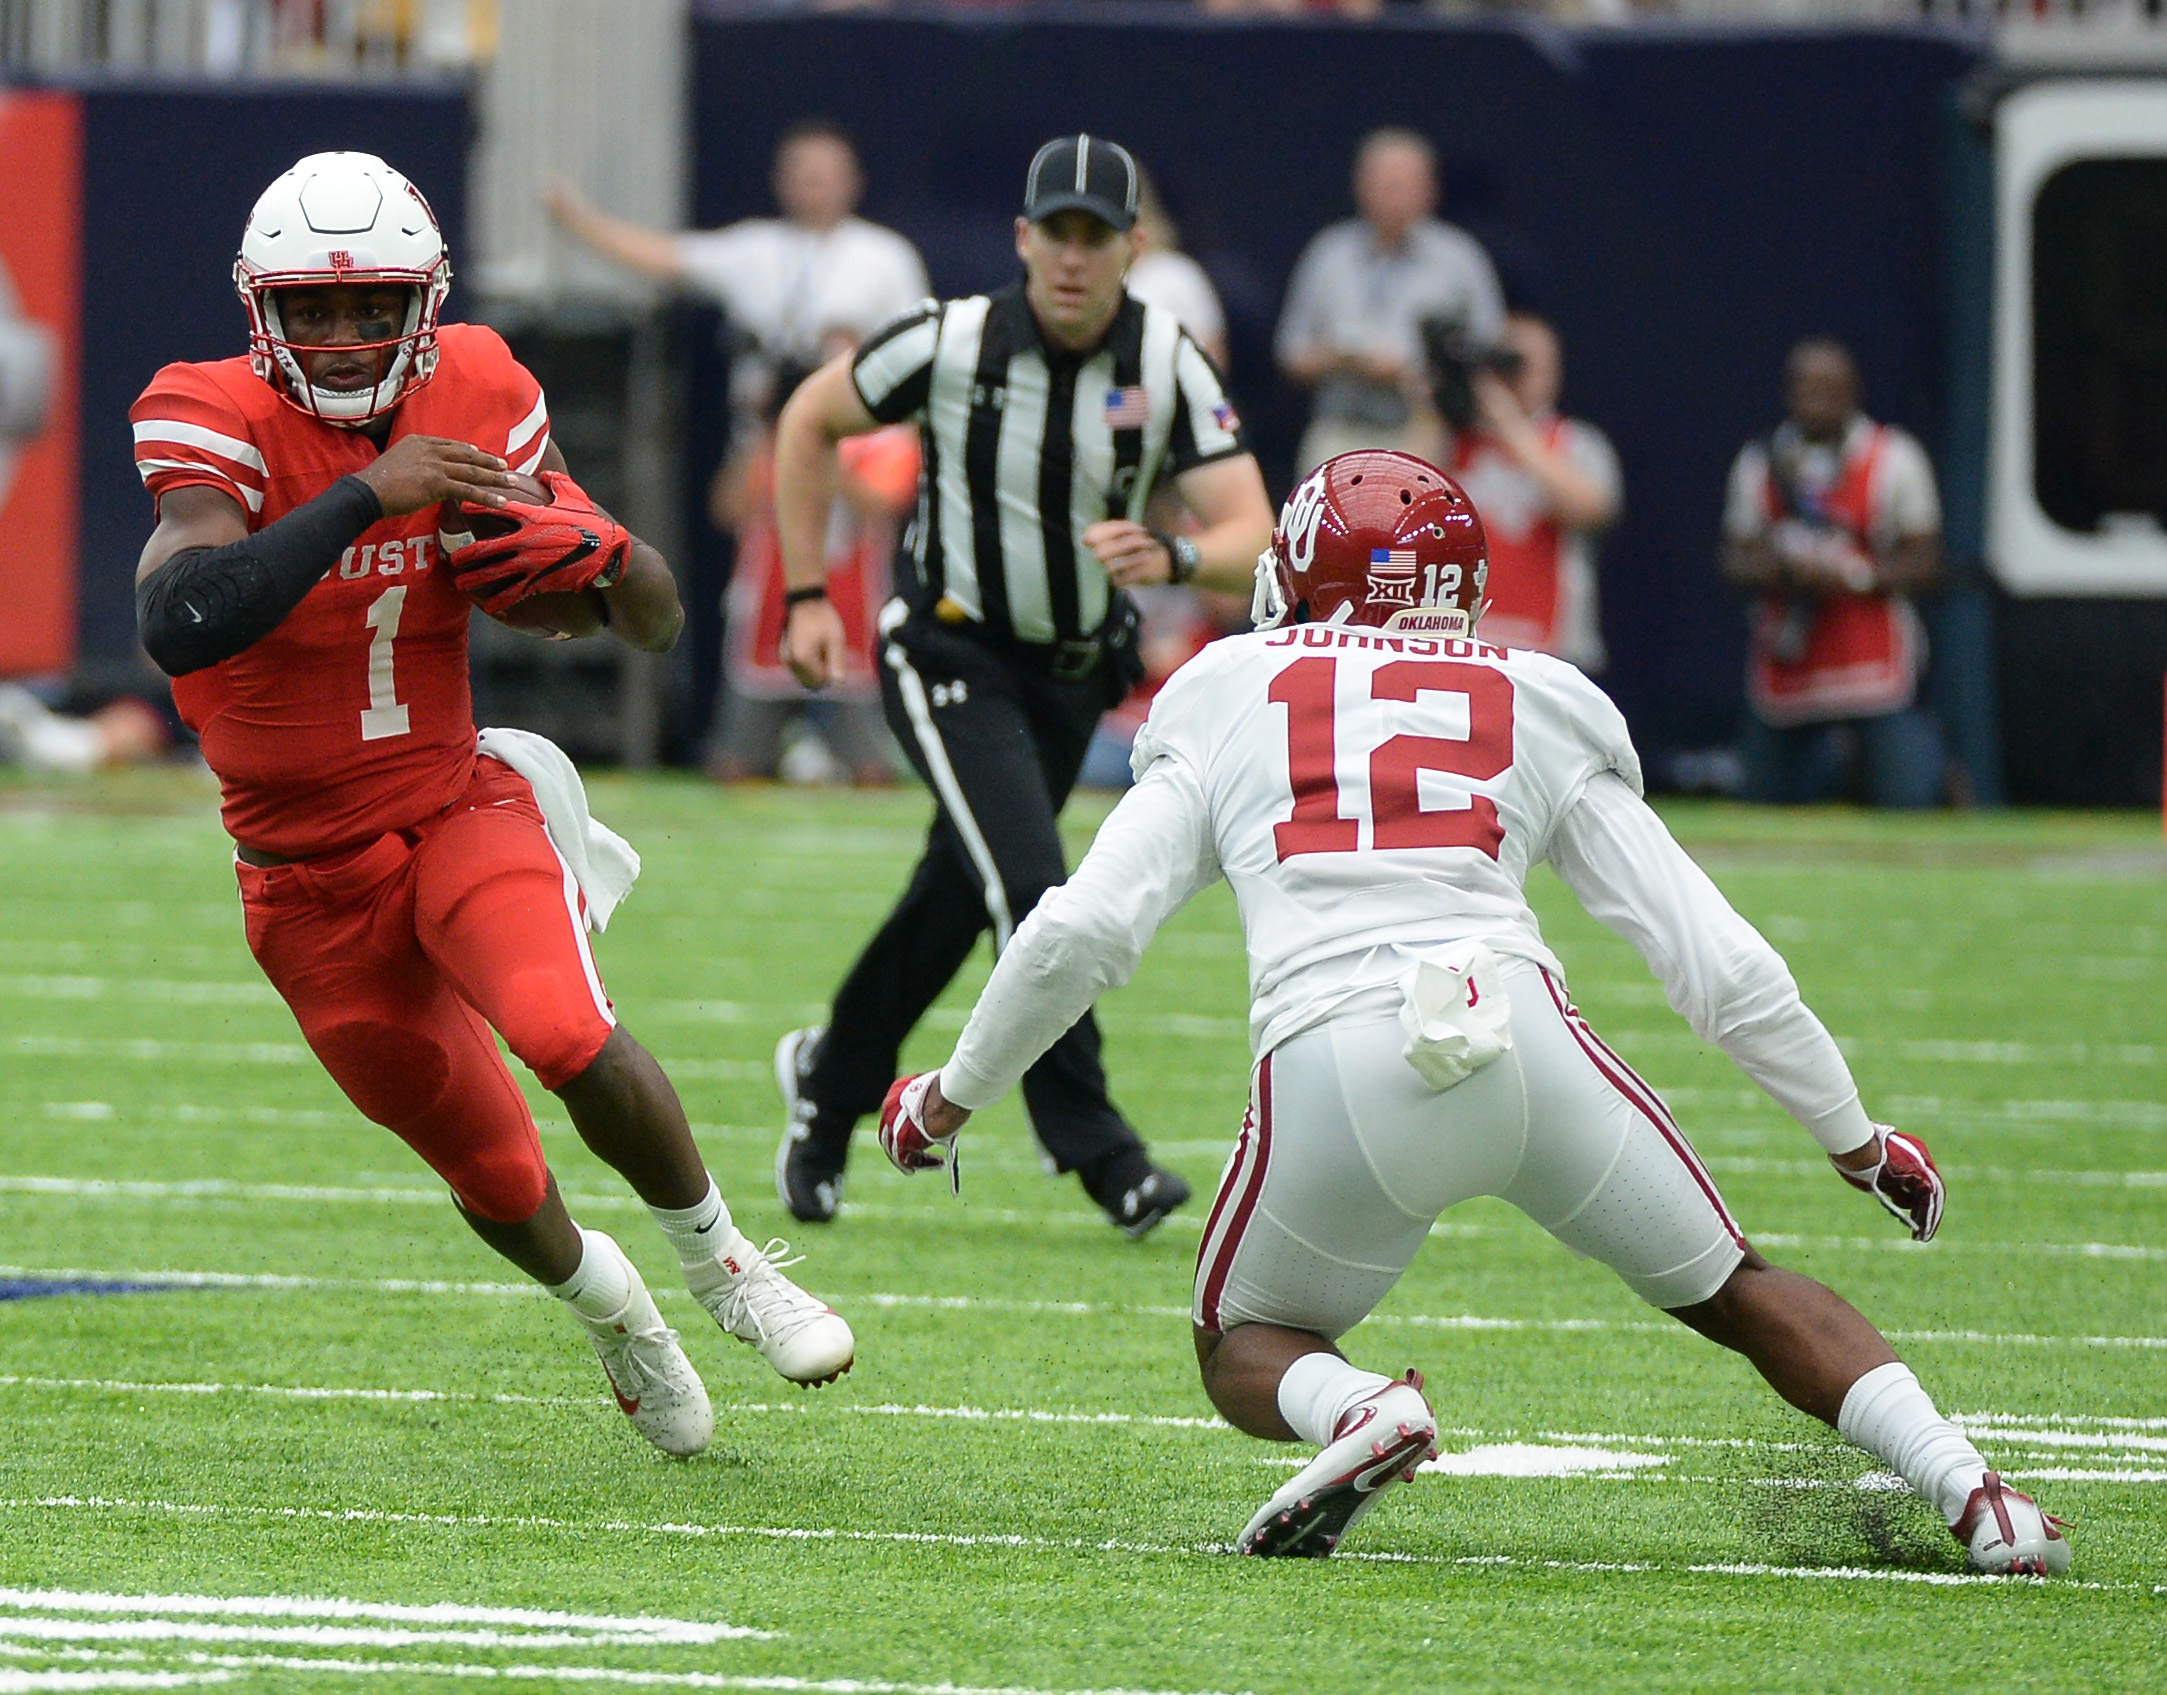 Houston quarterback Greg Ward Jr. (1) runs against Oklahoma defensive back Will Johnson (12) in the first half of an NCAA college football game Saturday, Sept. 3, 2016, in Houston. (AP Photo/George Bridges)